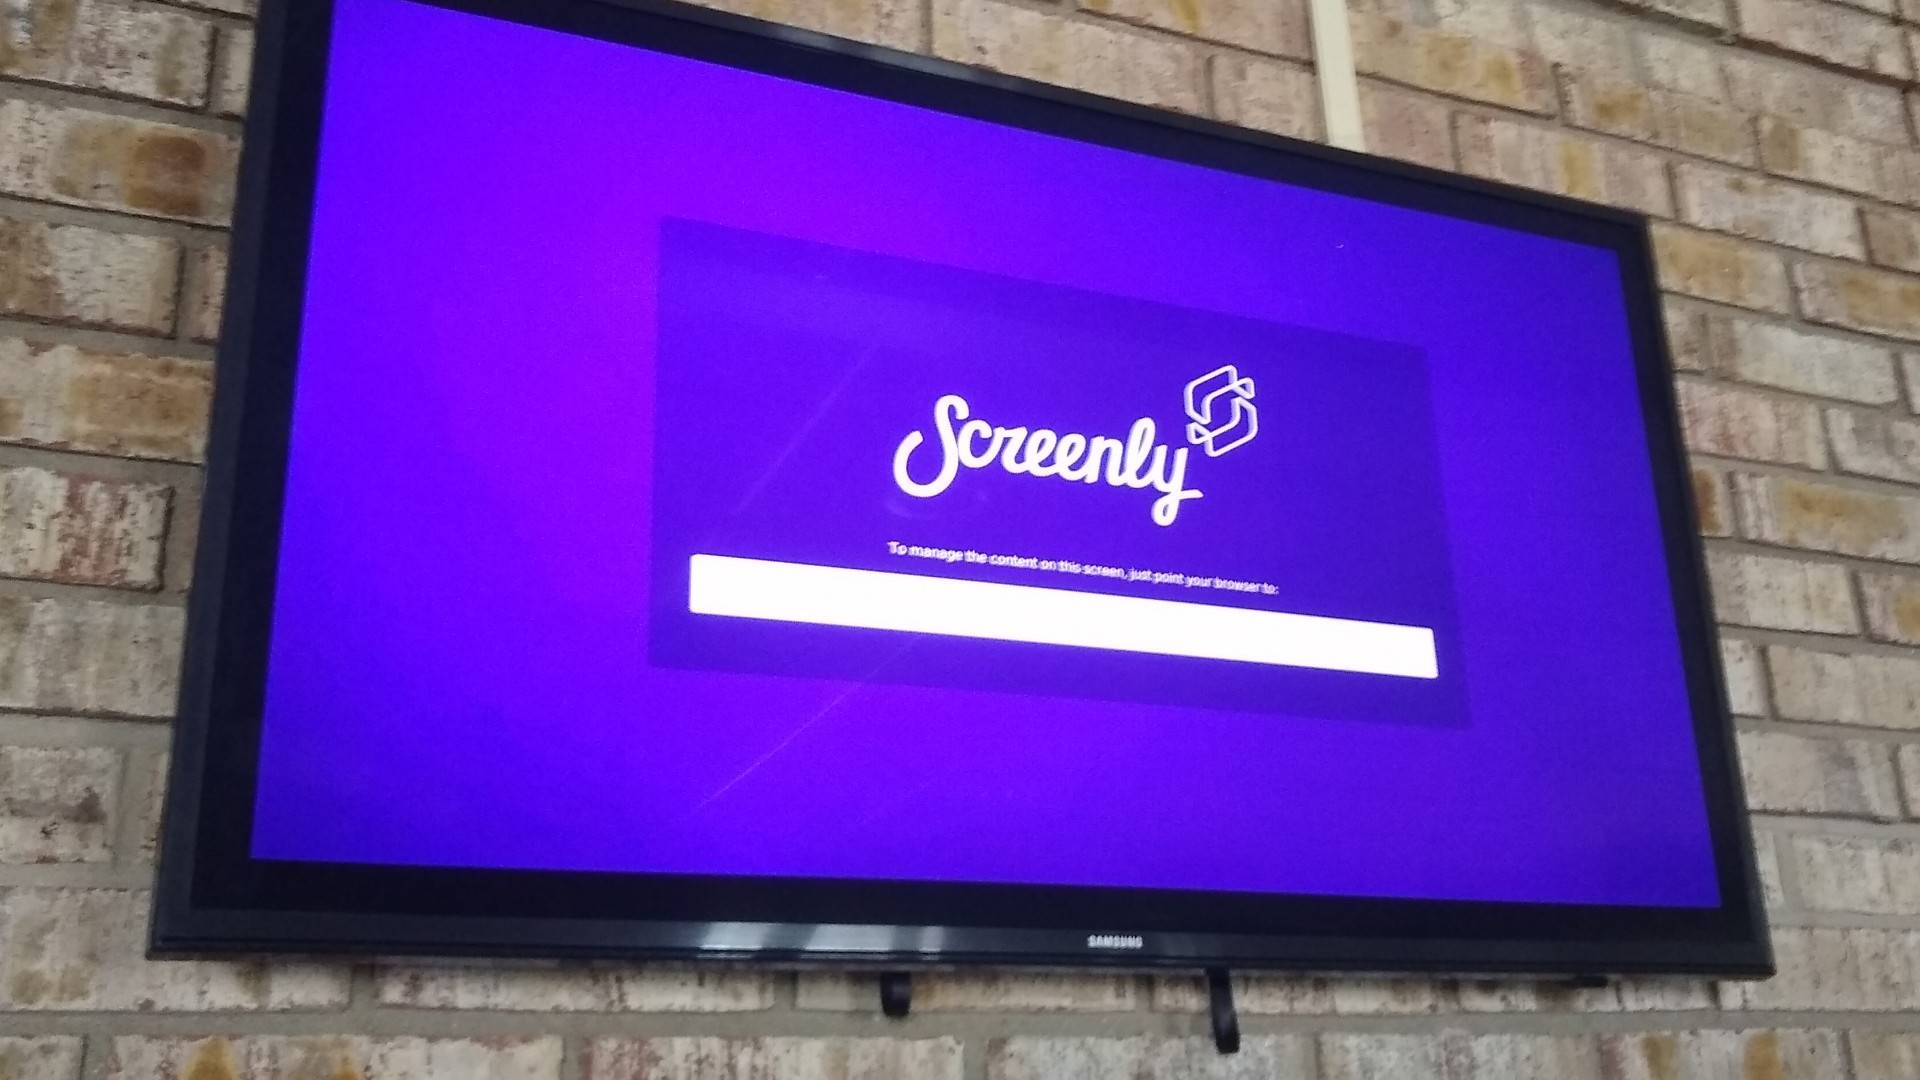 Screenly: Digital Sign Solution for Raspberry Pi (Tutorial)